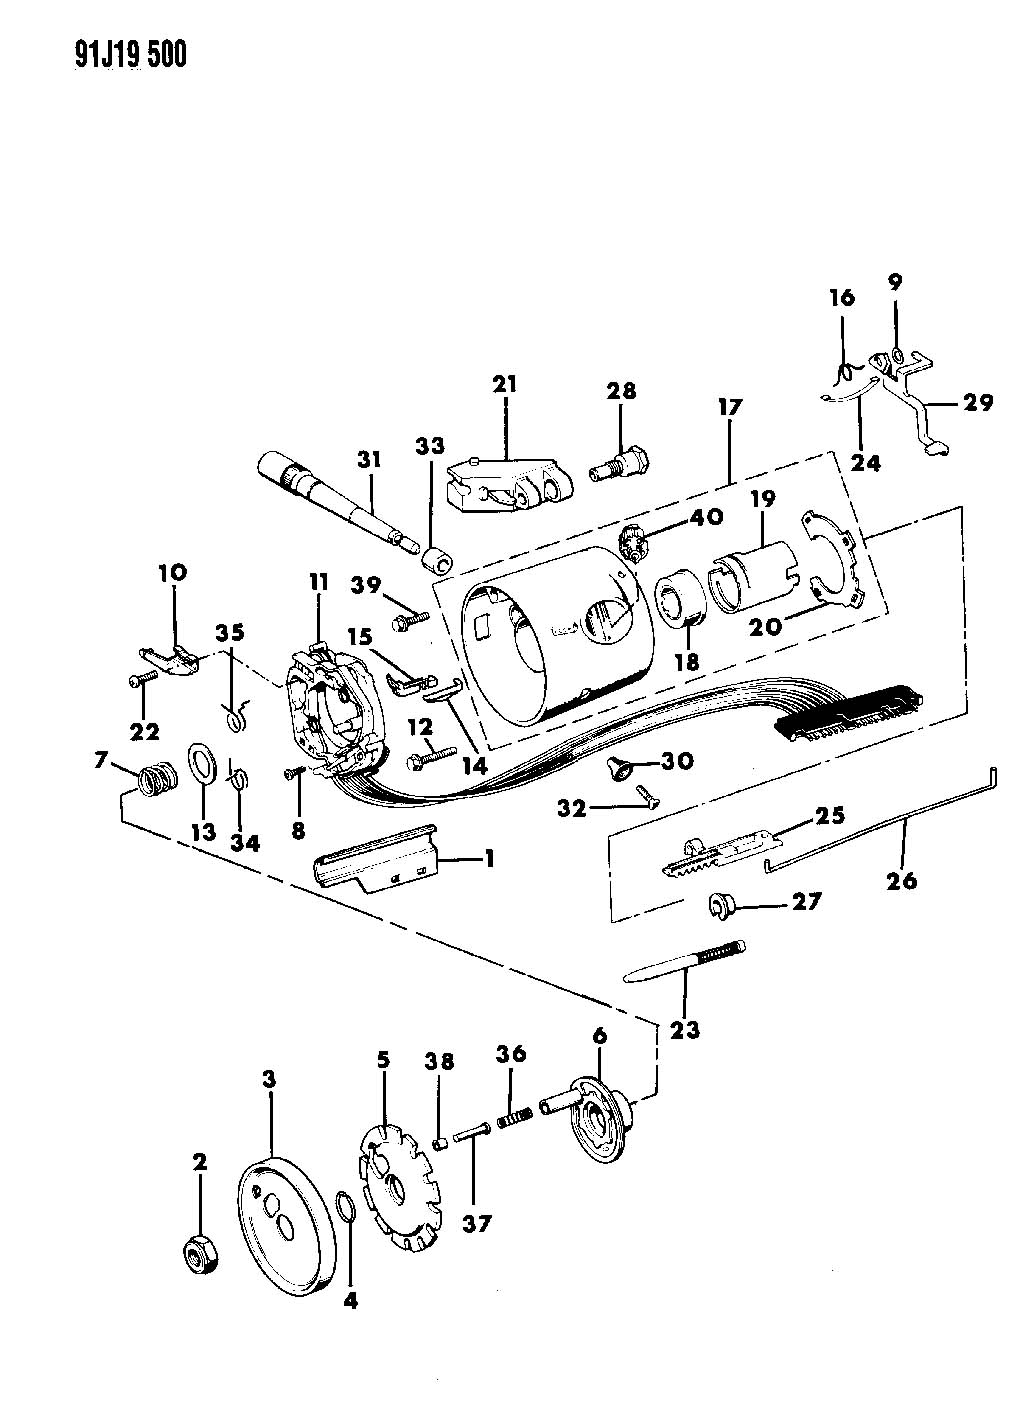 1989 Jeep Cherokee Steering Column Wiring Diagram